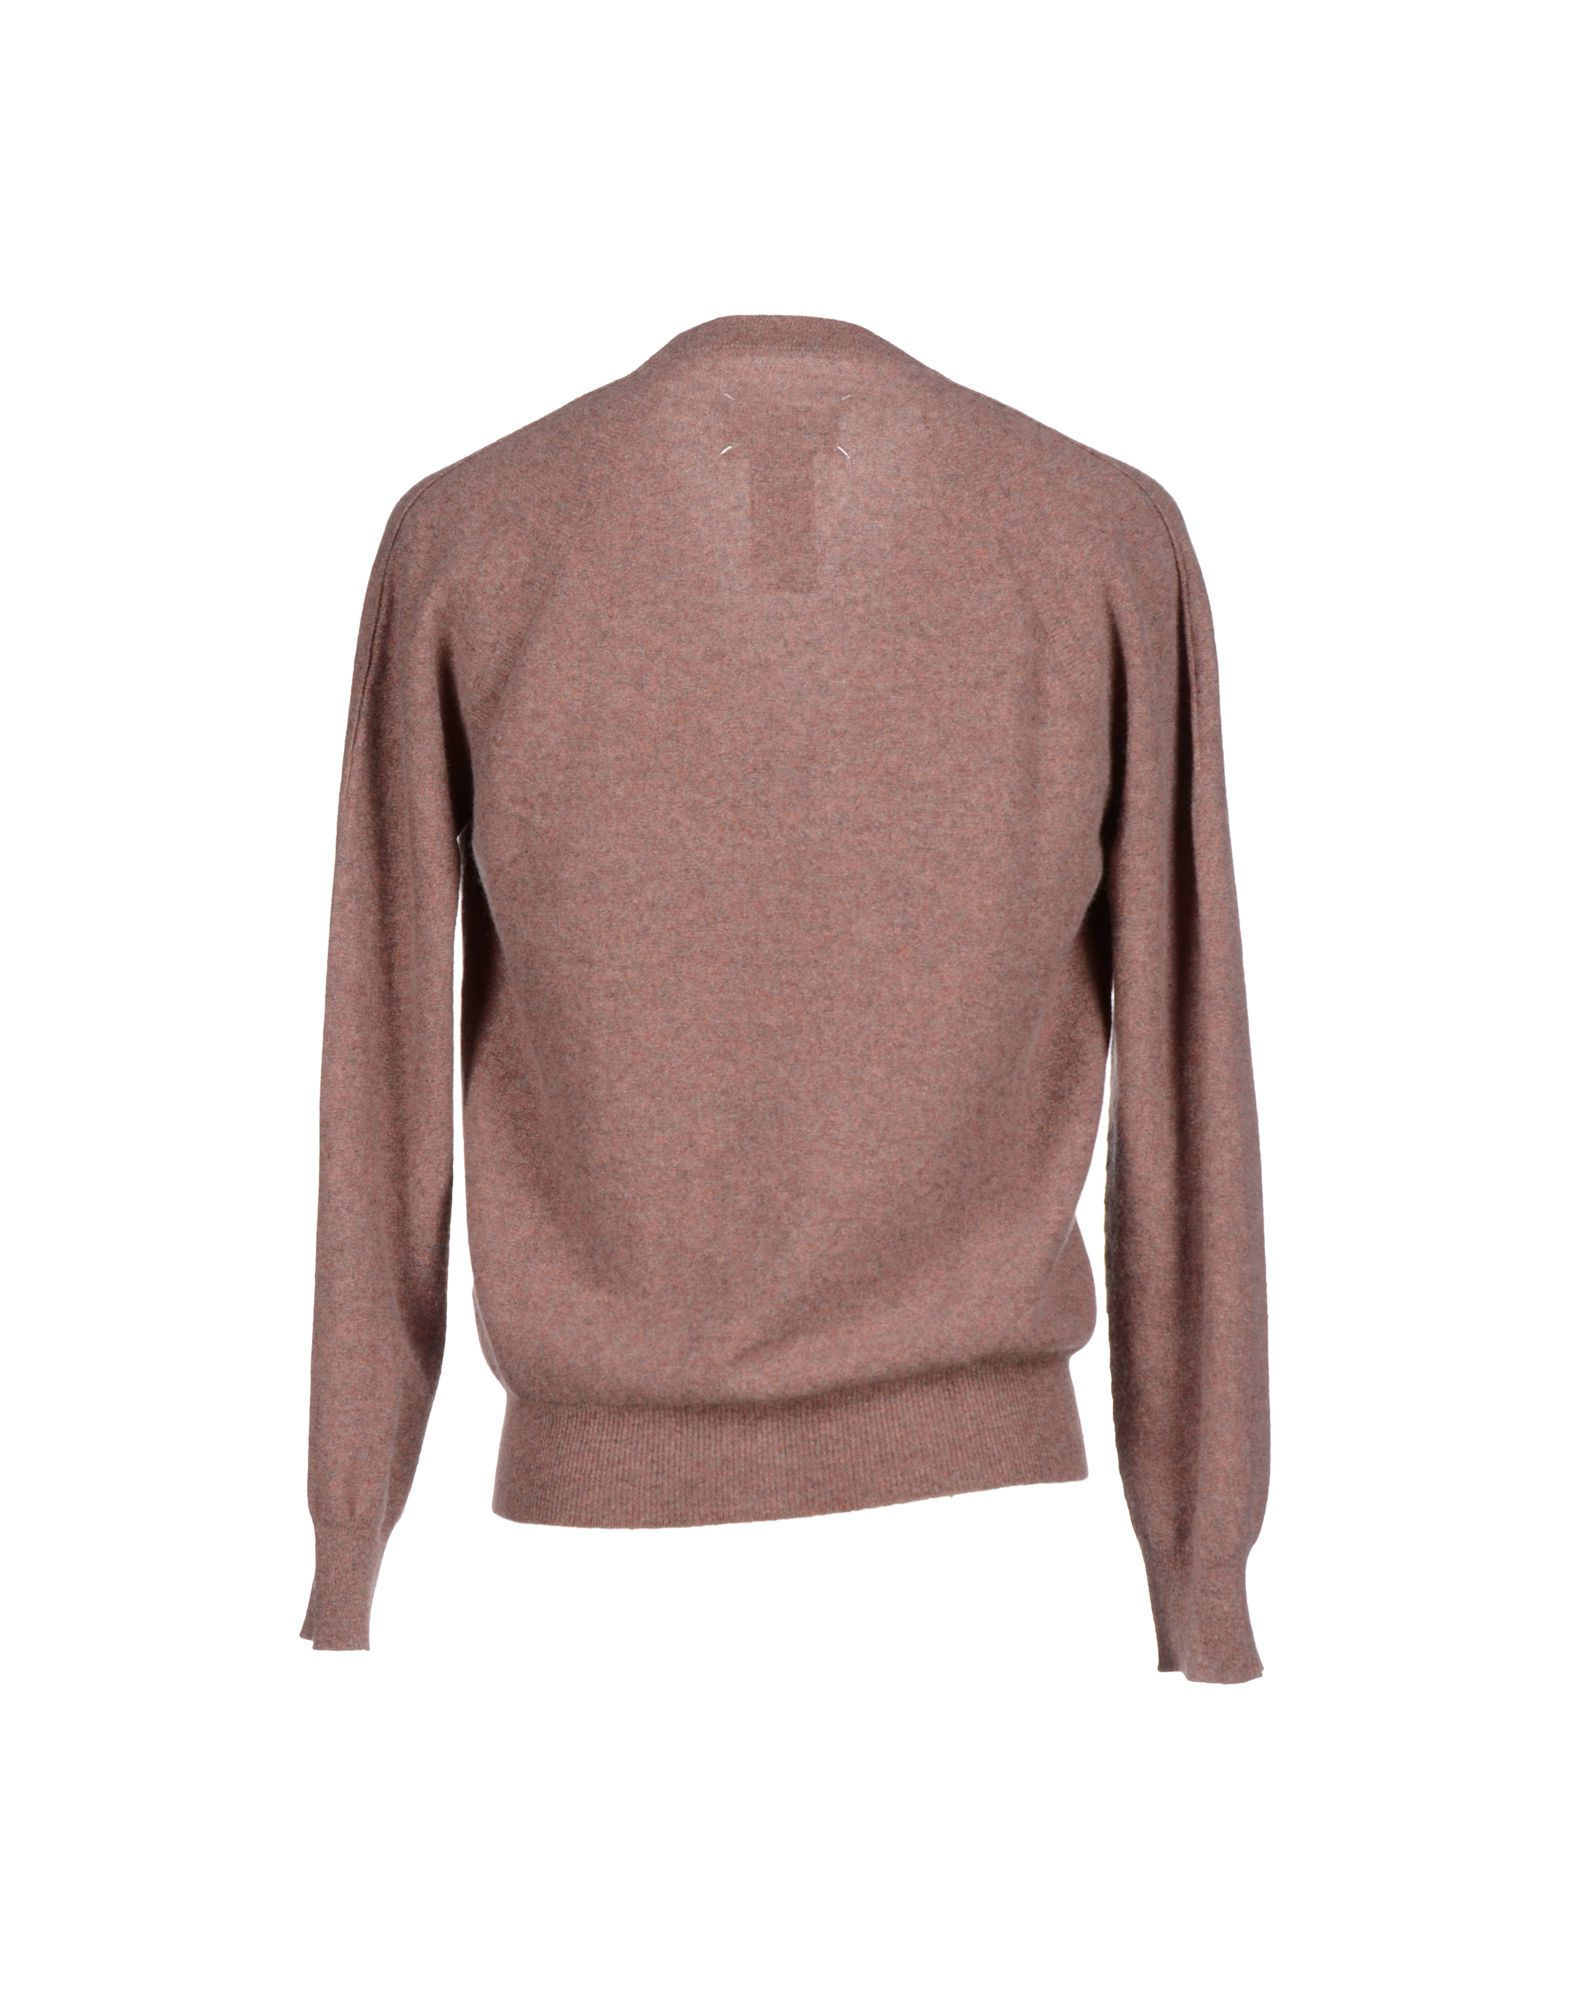 Find and save ideas about Brown cardigan outfit on Pinterest. | See more ideas about Brown cardigan, Cardigan outfits and Tan pants outfit.